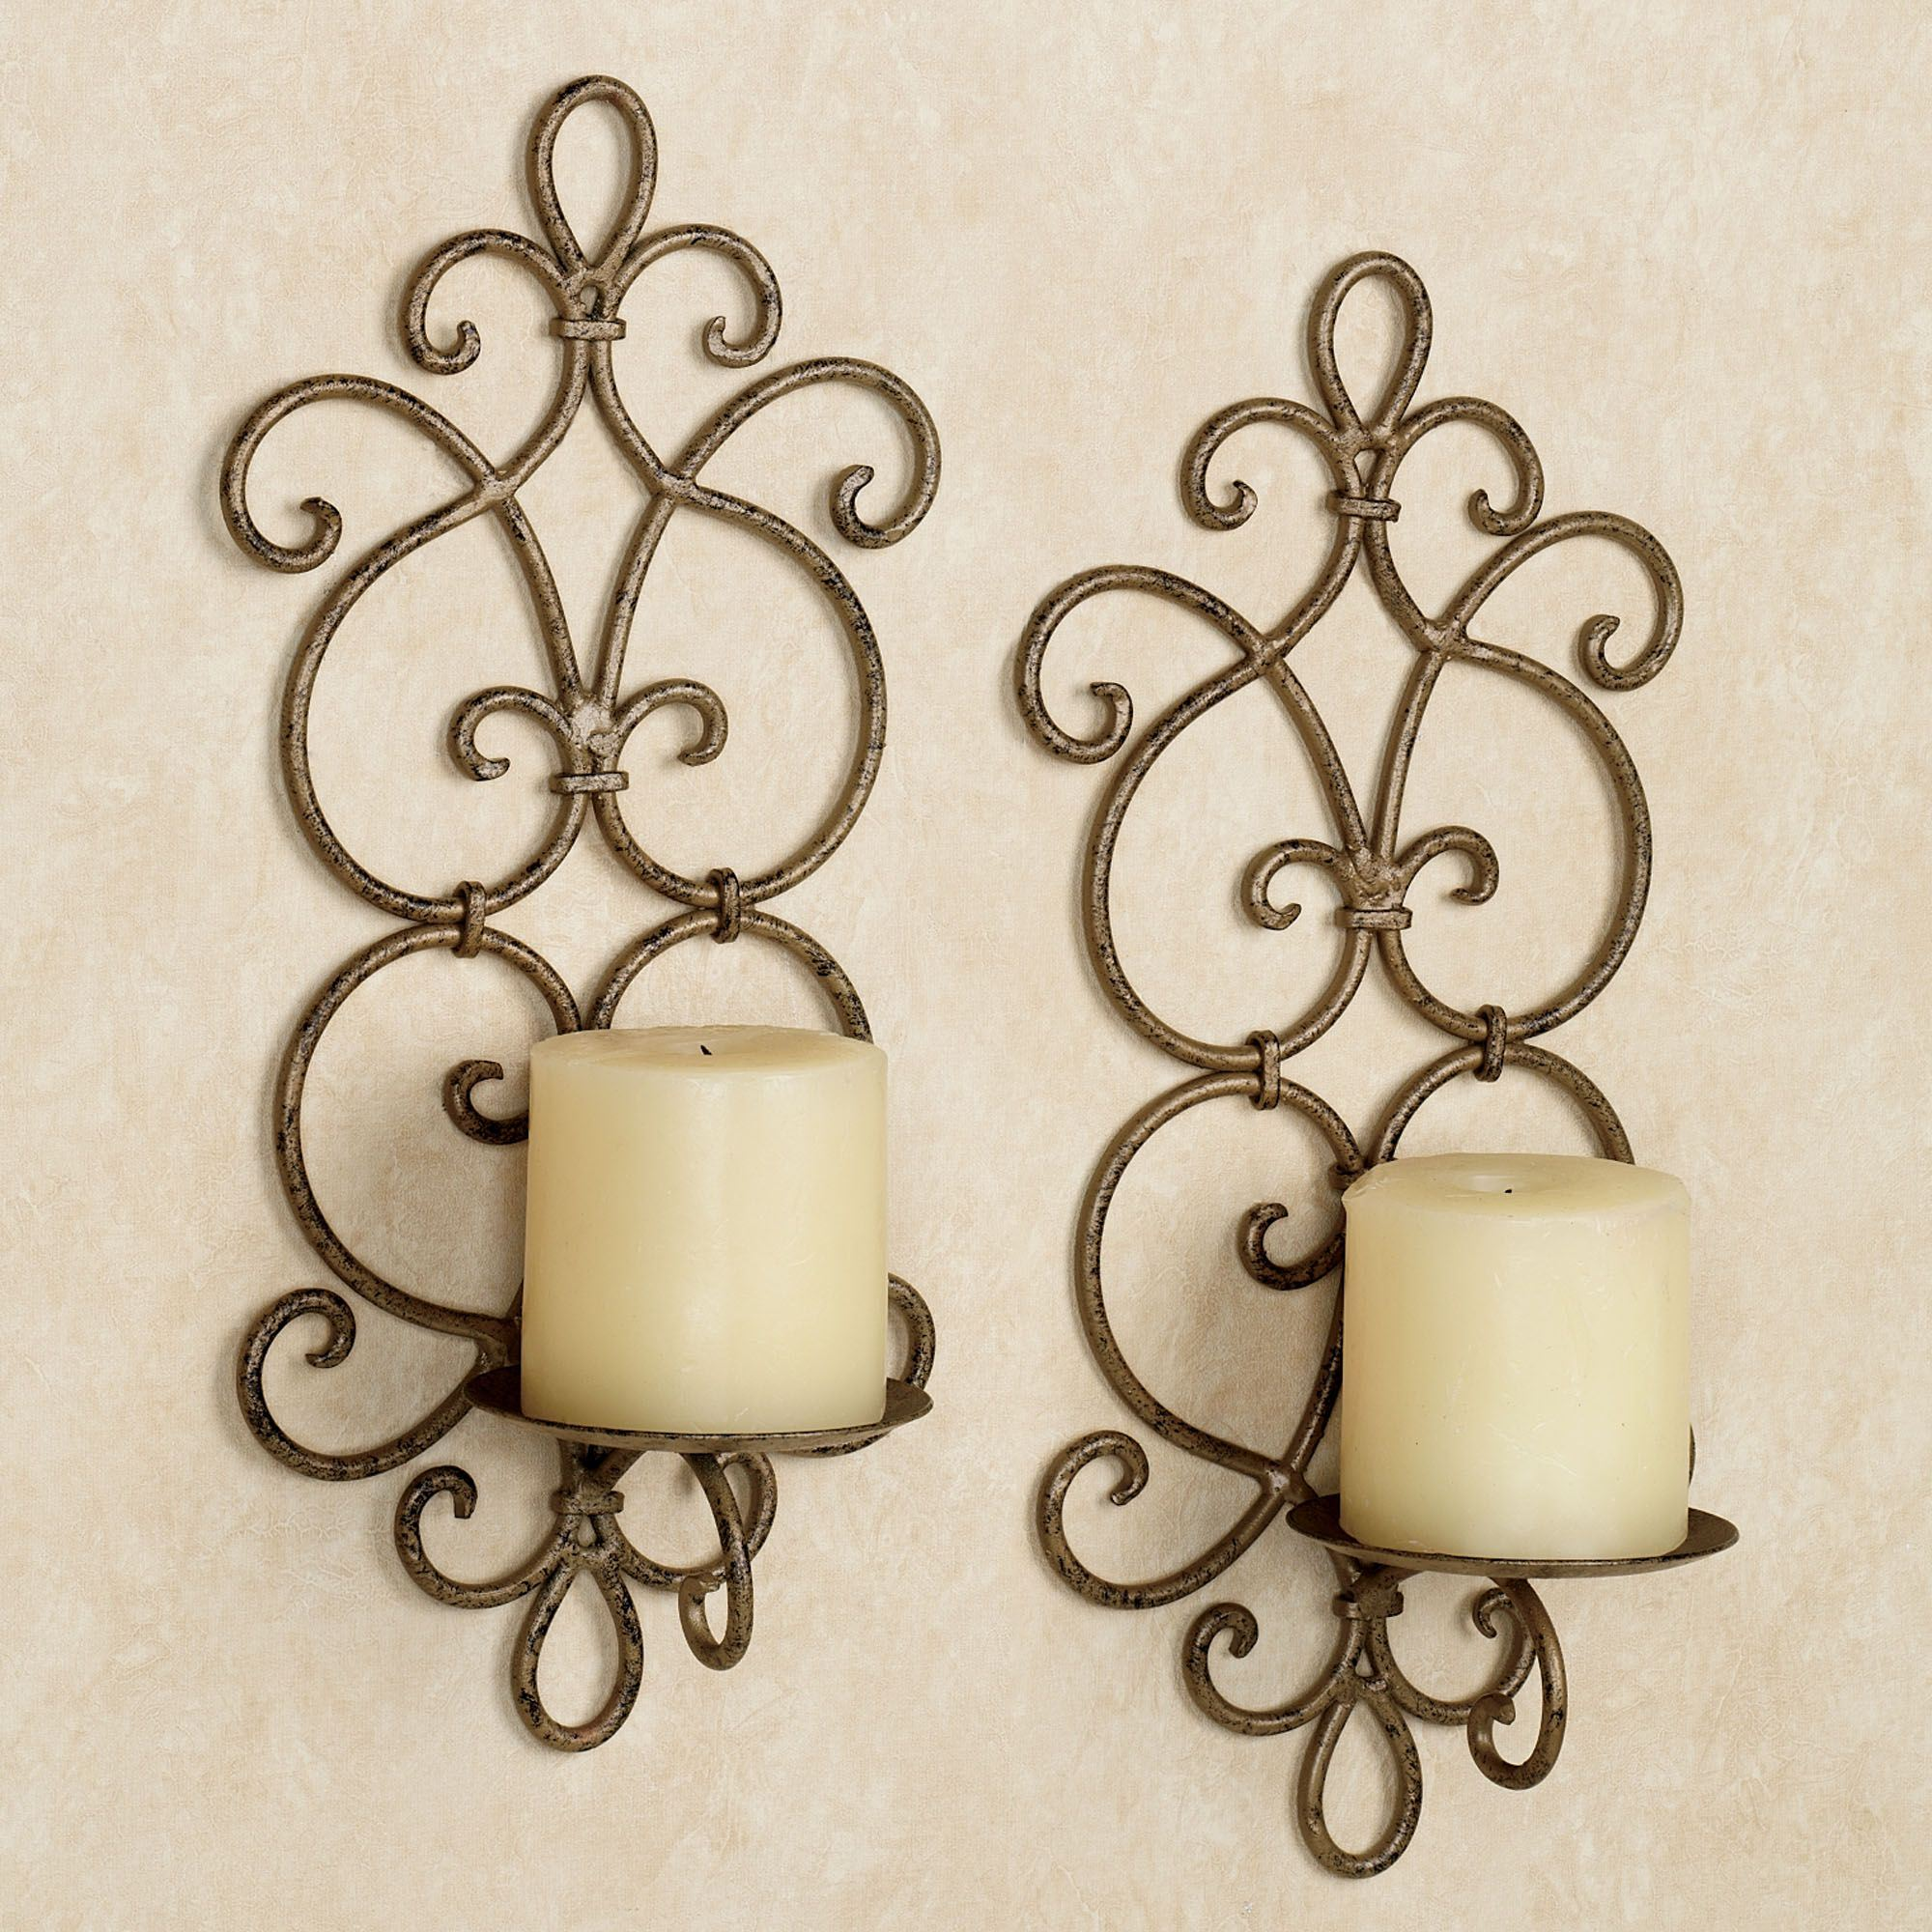 Jennings antique gold iron wall sconce pair jennings wall sconce pair antique gold pair click to expand amipublicfo Image collections